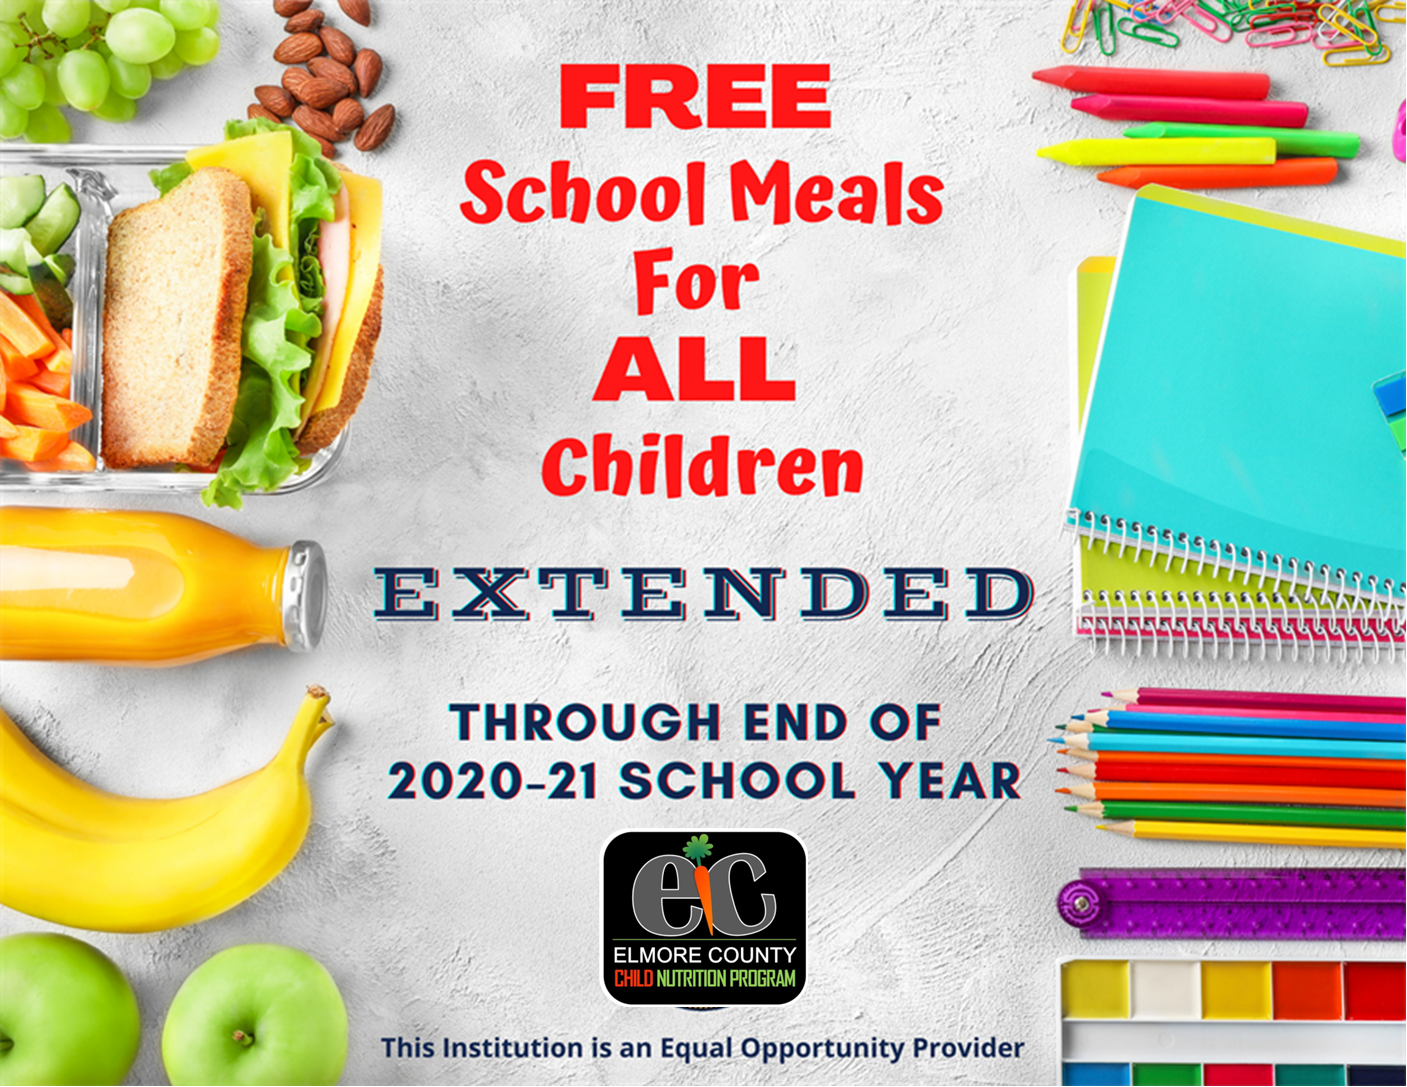 Free Meals through the end of the 20-21 School Year!